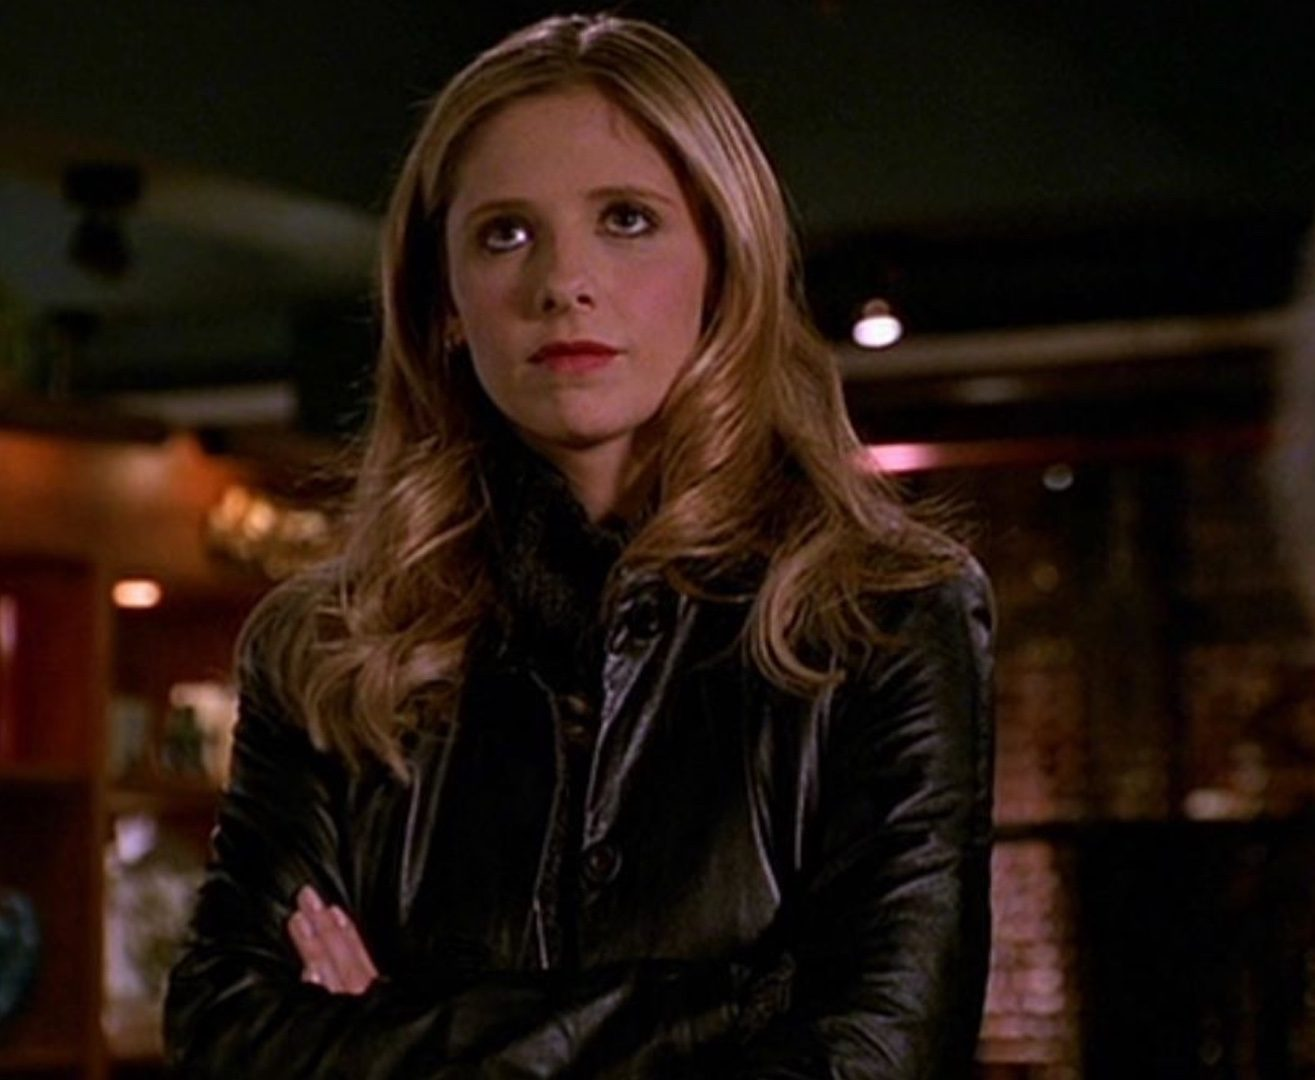 sarah michelle gellar reveals her favorite episodes of buffy the vampire slayer social e1617028660439 20 Things You Probably Didn't Know About Clueless